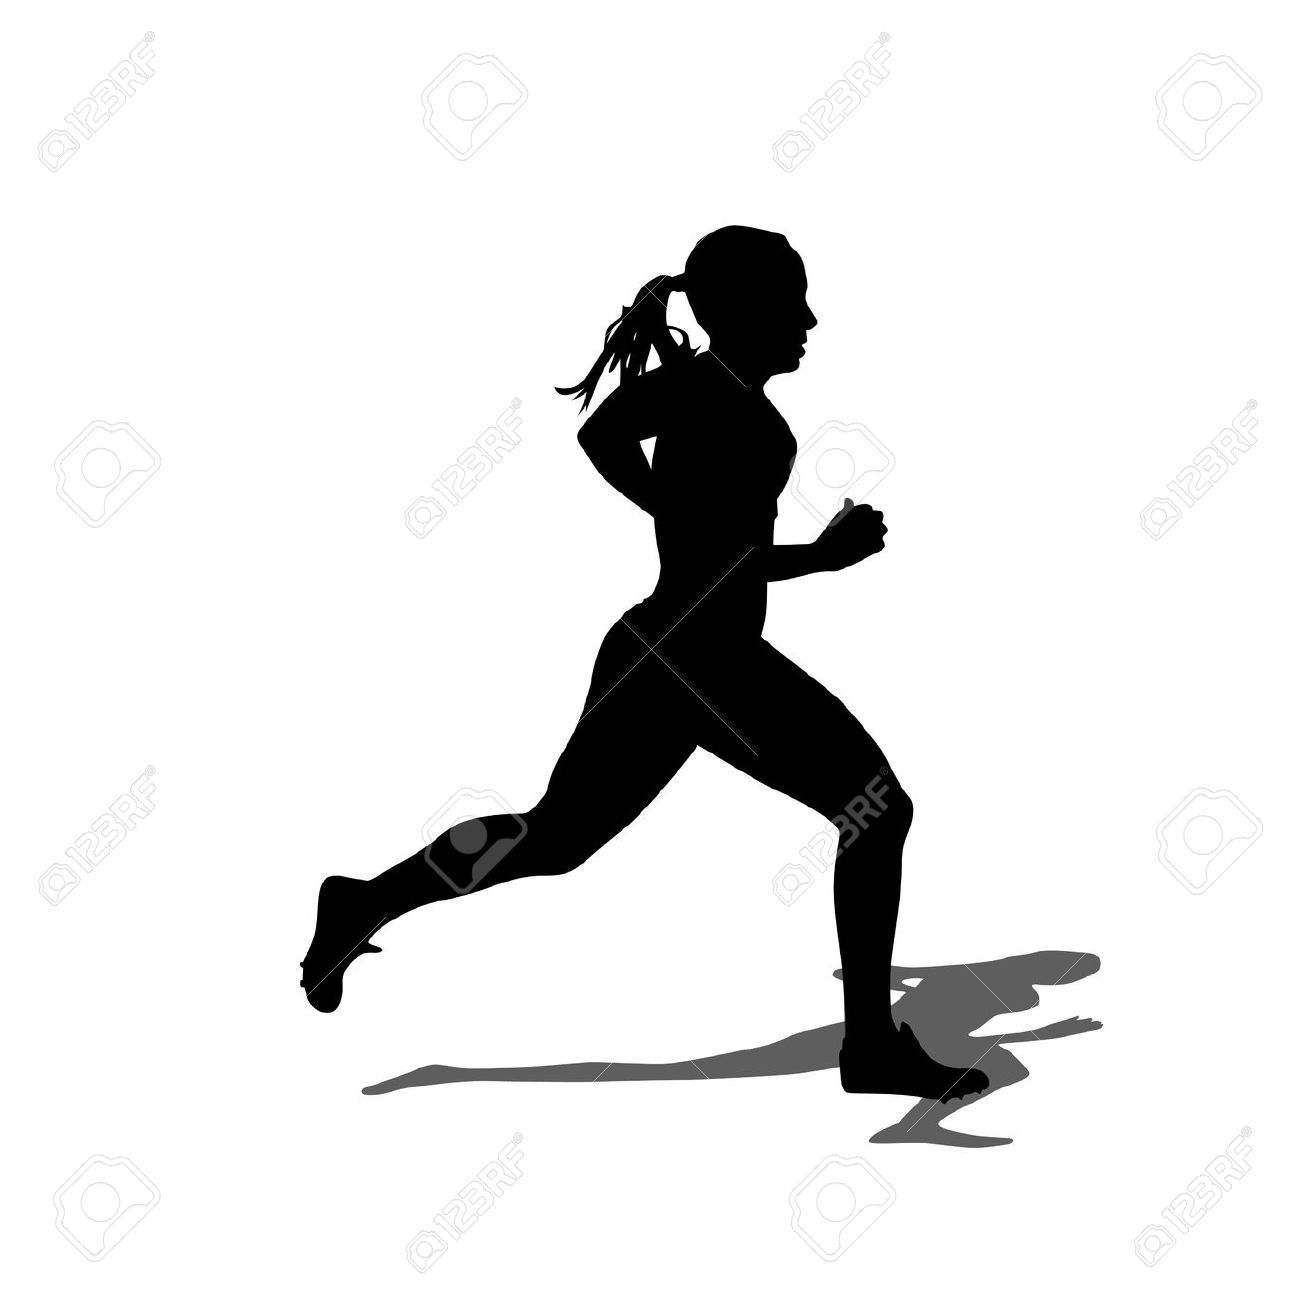 Marathon Runner Silhouette Images, Stock Pictures, Royalty ...